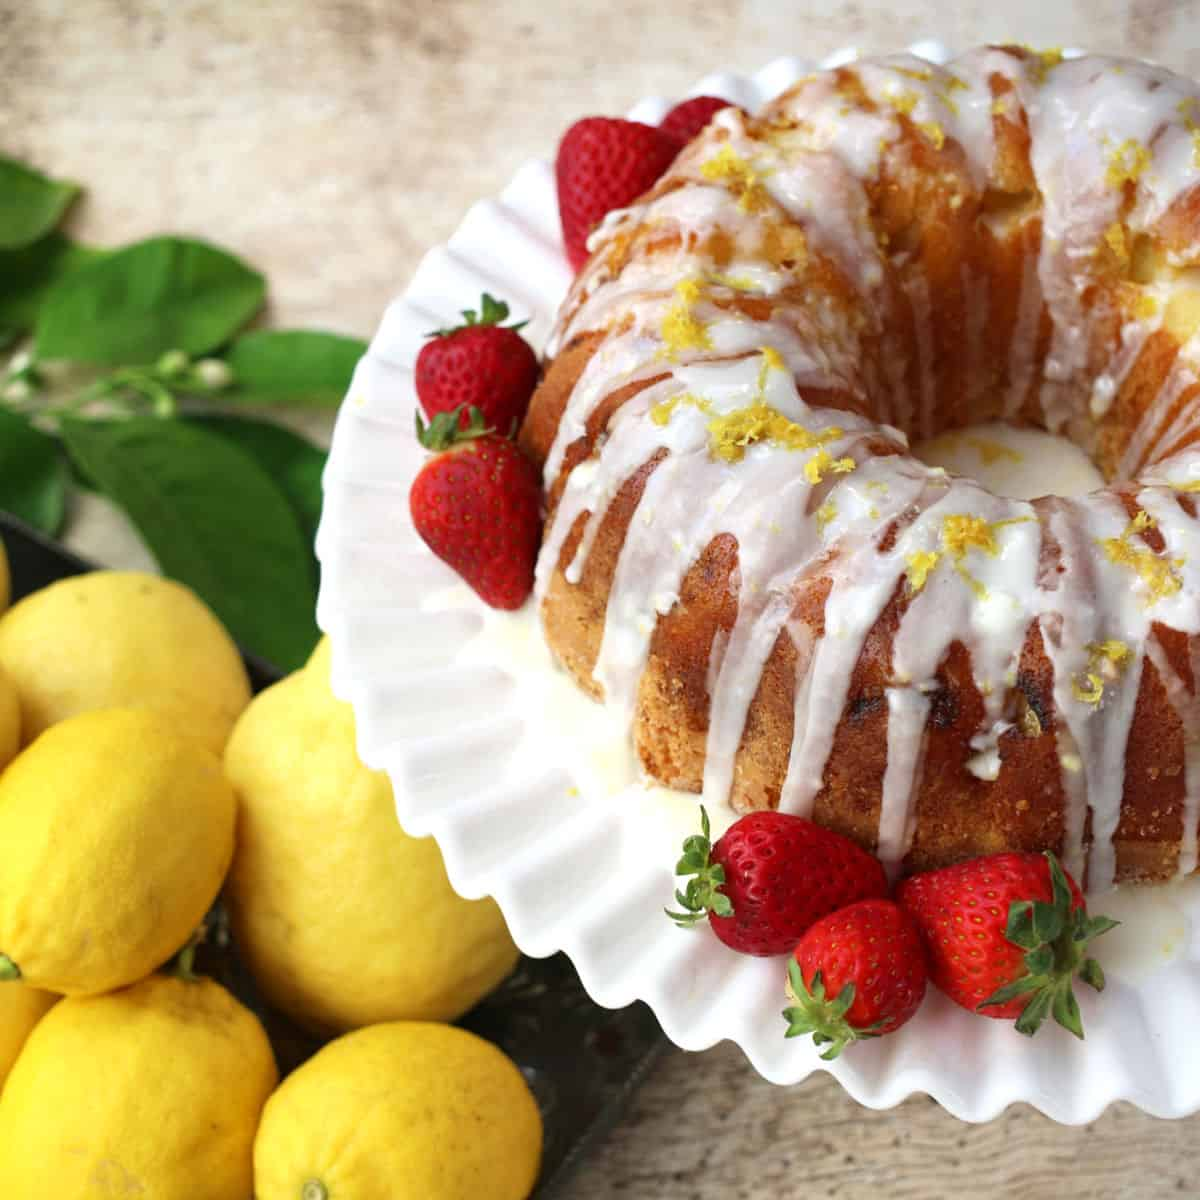 A lemon bundt cake with vanilla frosting and strawberries.